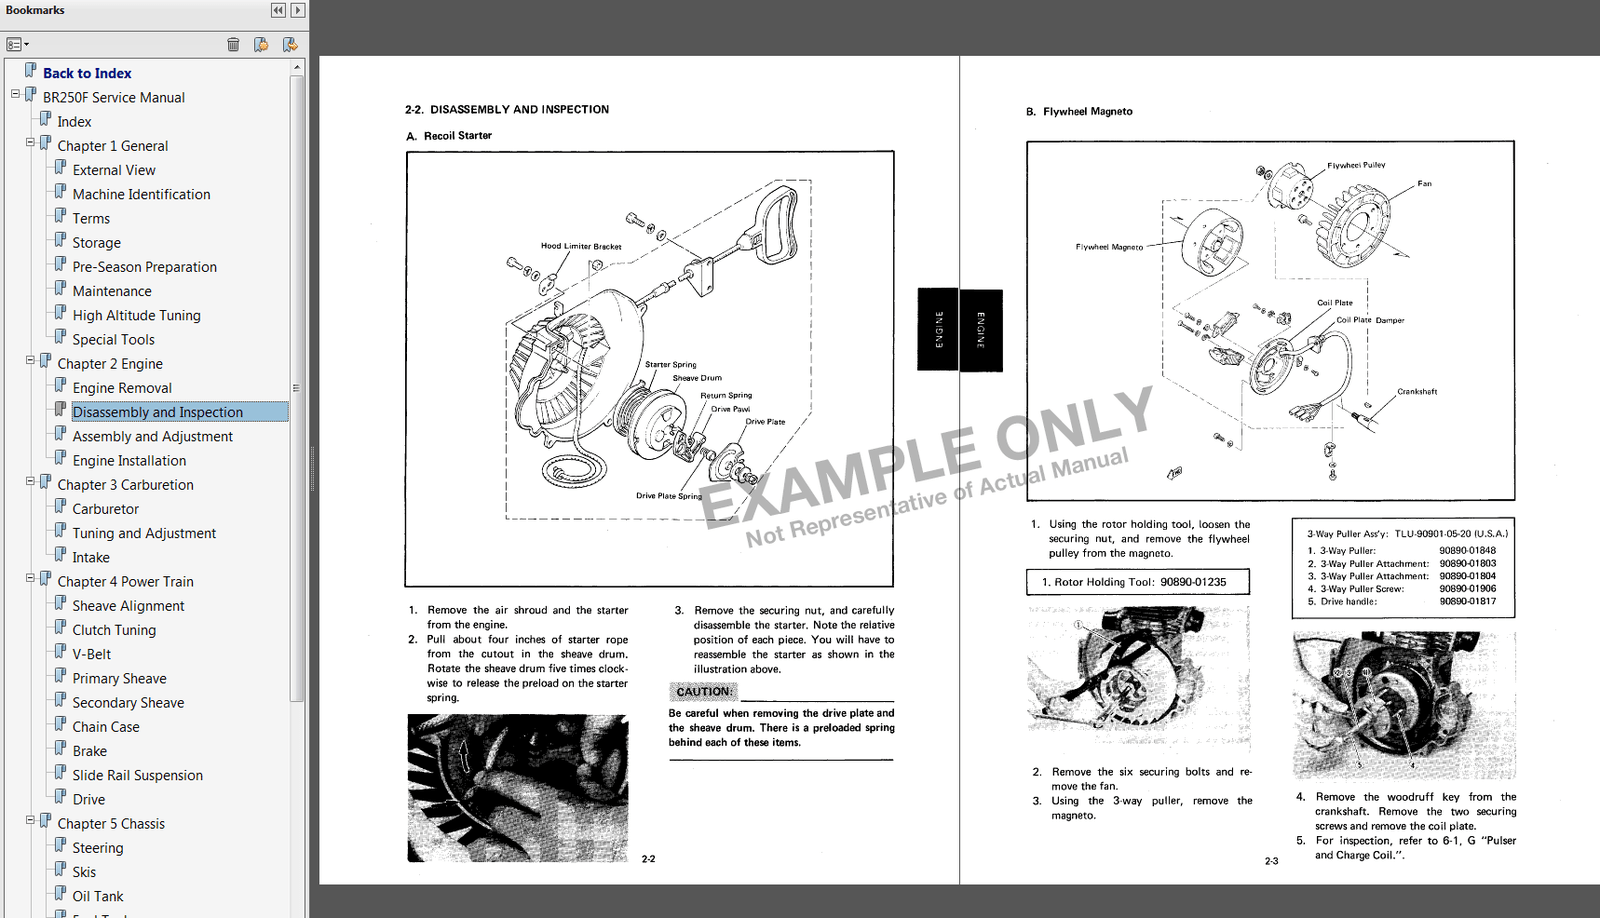 1994-1996 Yamaha VMAX 500/600 Snowmobile Service Manual